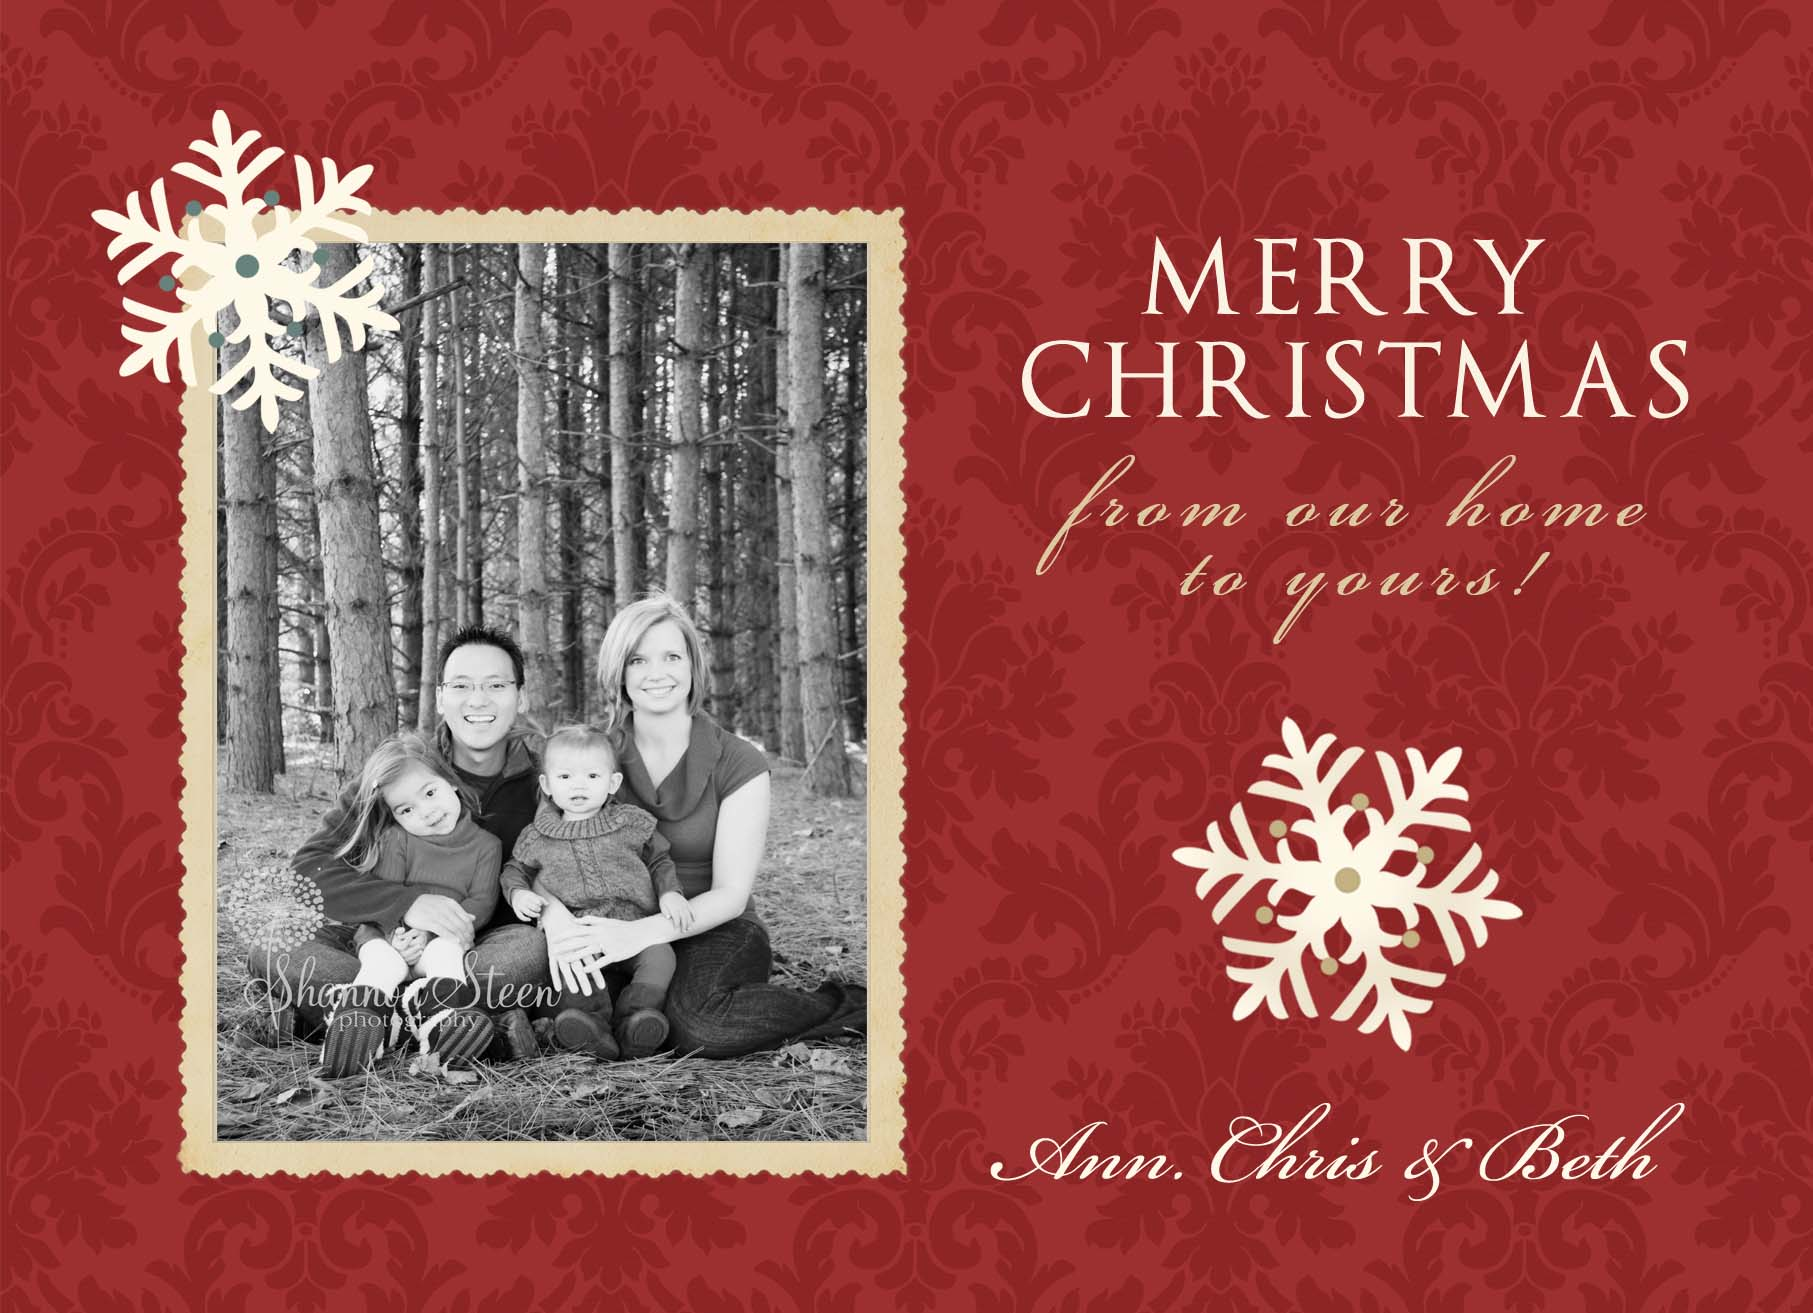 Christmas cards are here shannon steen photography advertisements m4hsunfo